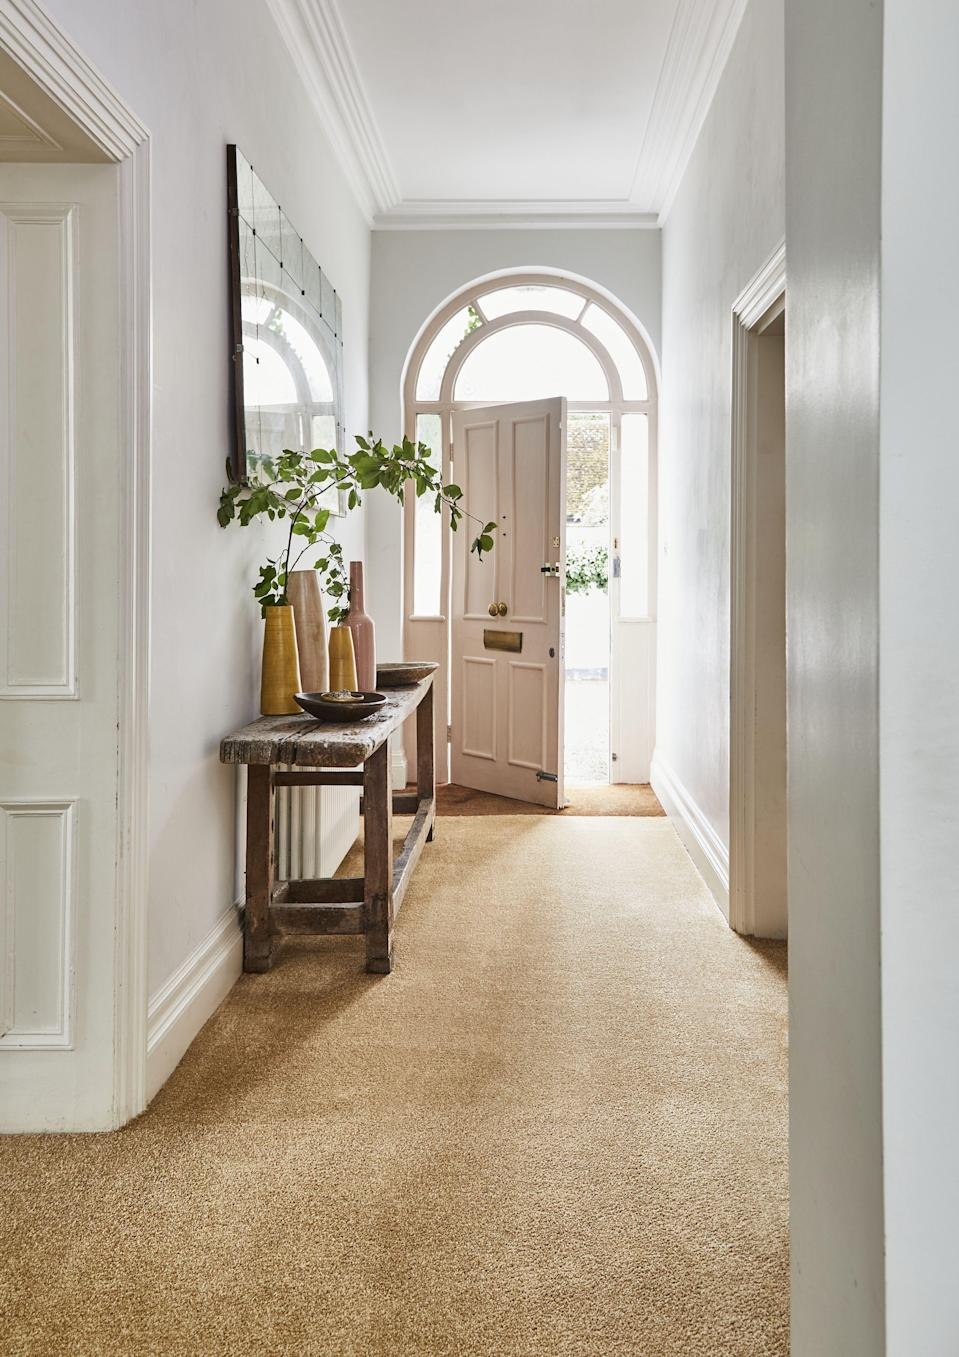 """<p><strong>Looking for Instagramma</strong><strong>ble <a href=""""https://www.housebeautiful.com/uk/decorate/hallway/a2283/hallway-decorating-ideas-tips/"""" rel=""""nofollow noopener"""" target=""""_blank"""" data-ylk=""""slk:hallway ideas"""" class=""""link rapid-noclick-resp"""">hallway ideas</a>? Fro</strong><strong>m colour palettes to inventive storage suggestions, there are plenty of ways to add depth and interest to your space. </strong></p><p>First impressions matter, which is why planning the perfect scheme is key. A space to accommodate traffic, we often give our hallway corridor status — rather than treating them as another room in the home. While it can be easy to overlook them (or simply use them as a dumping ground for muddy shoes and unopened post), transforming them into stylish spaces doesn't have to be a challenge. </p><p>Take a look at some of the ways you can spruce up your hallway...</p>"""